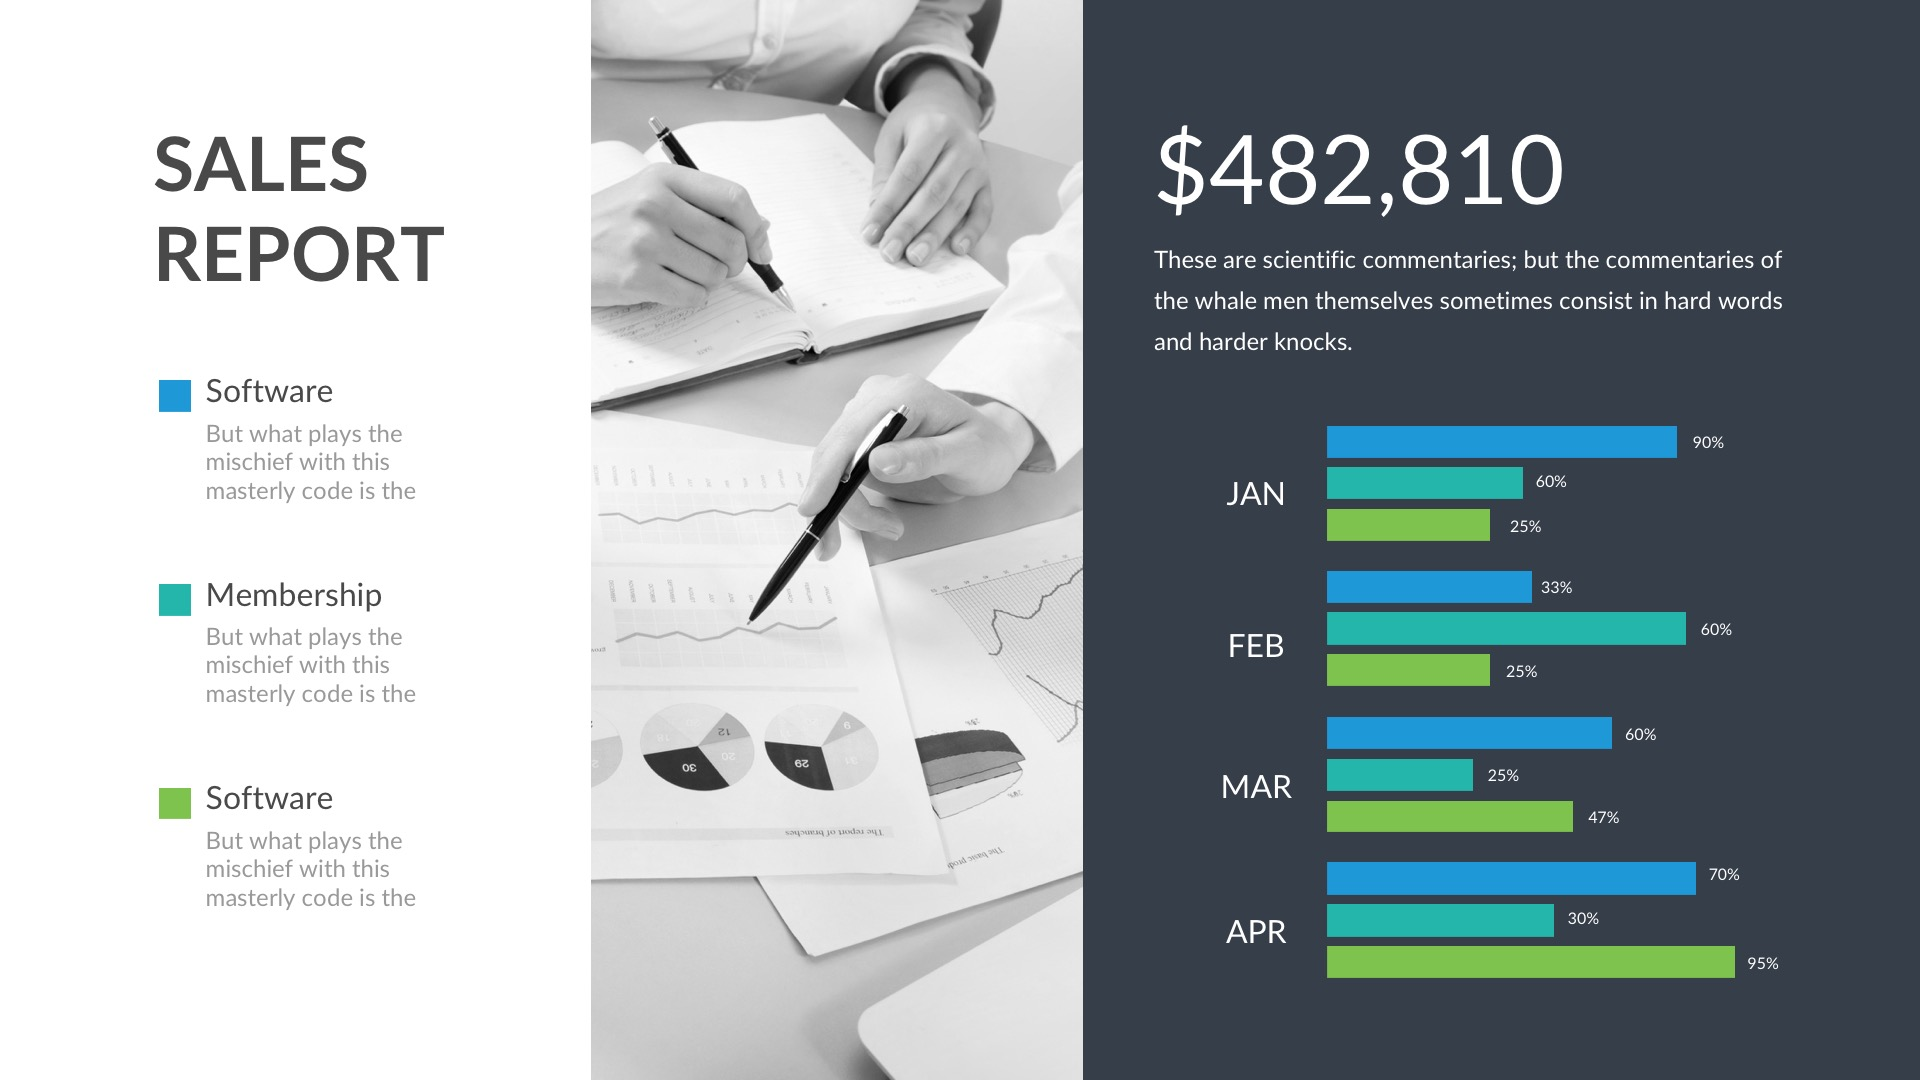 Momentum professional business powerpoint template by louistwelve design professional business powerpoint template 47g toneelgroepblik Choice Image